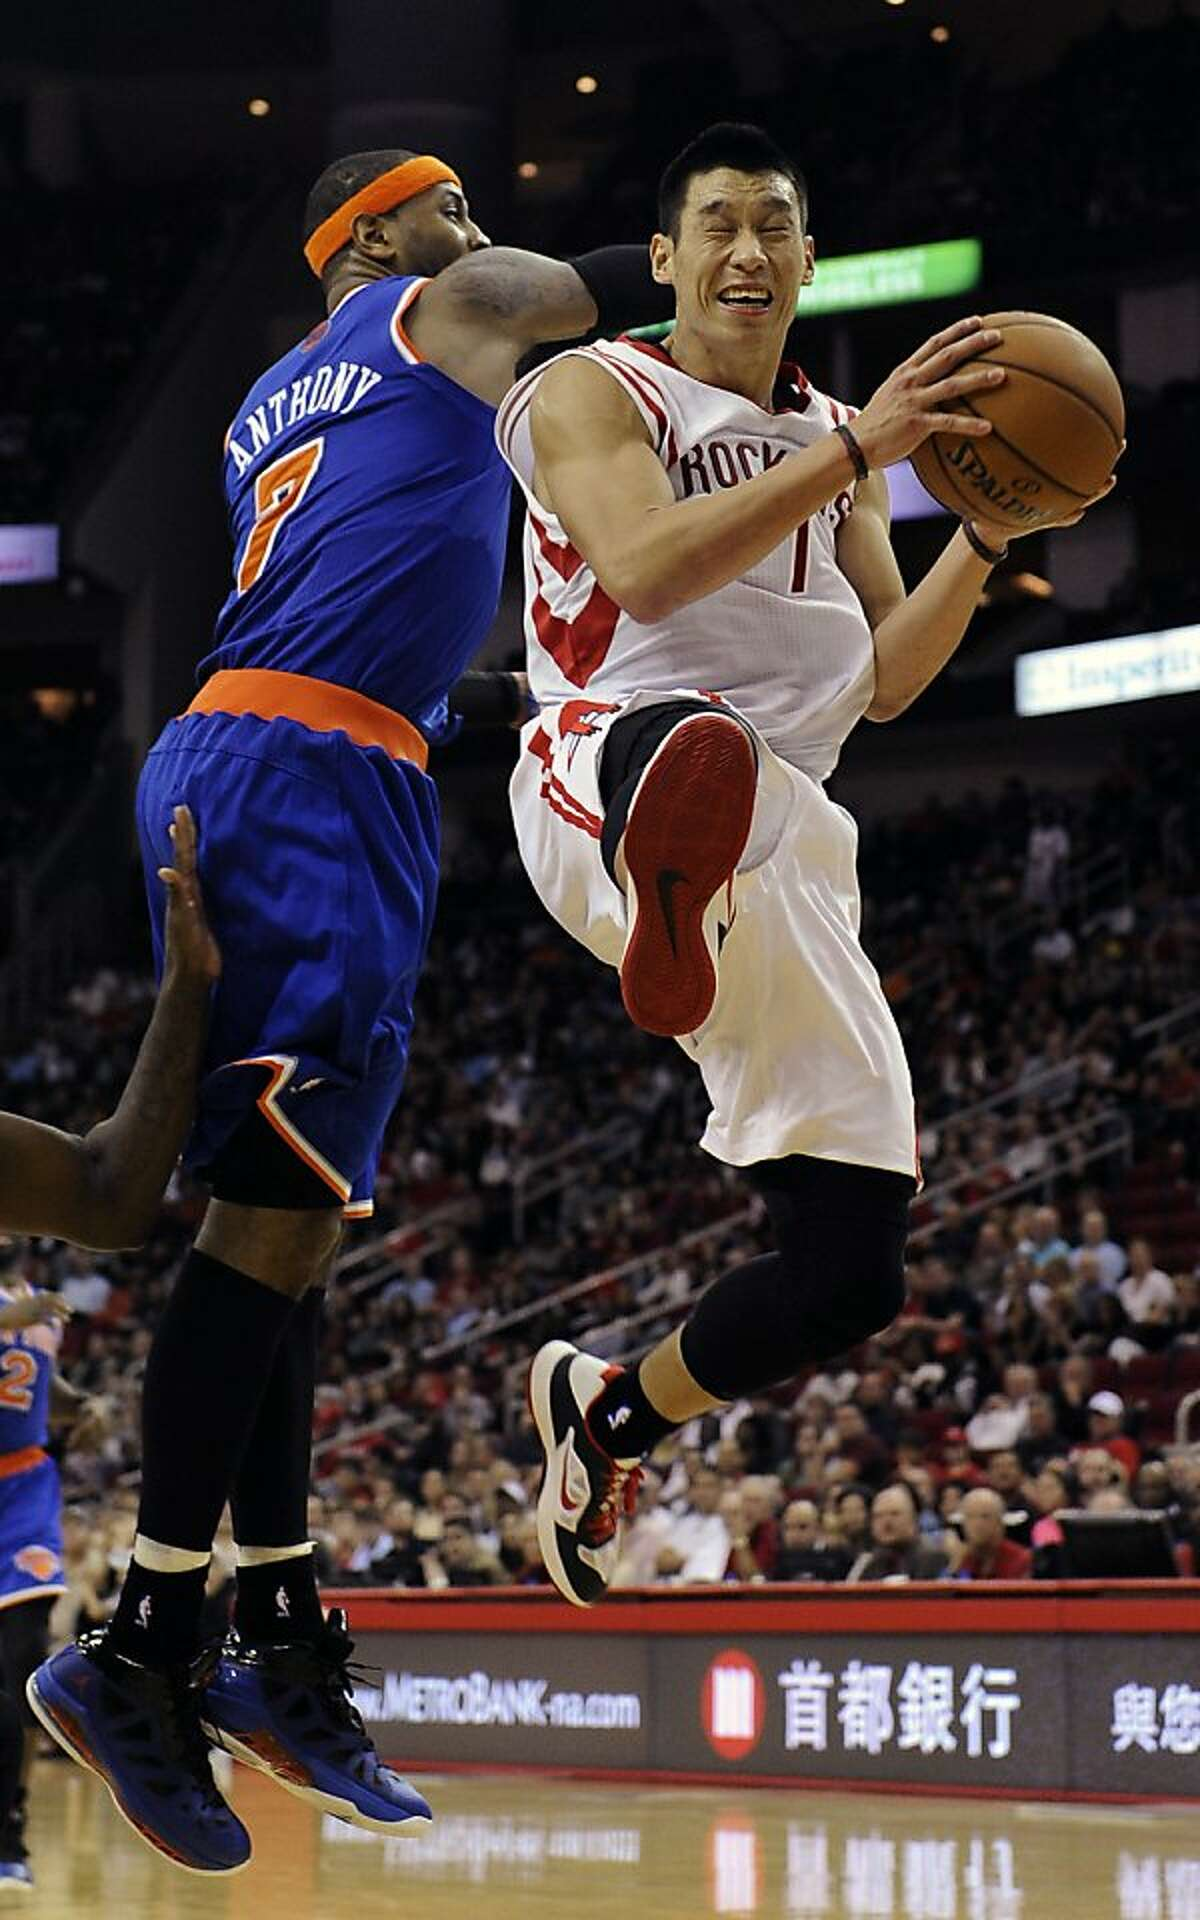 Houston Rockets' Jeremy Lin, right, goes to the basket as New York Knicks' Carmelo Anthony, left, tries to stop him in the second half of an NBA basketball game, Friday, Nov. 23, 2012, in Houston. (AP Photo/Pat Sullivan)